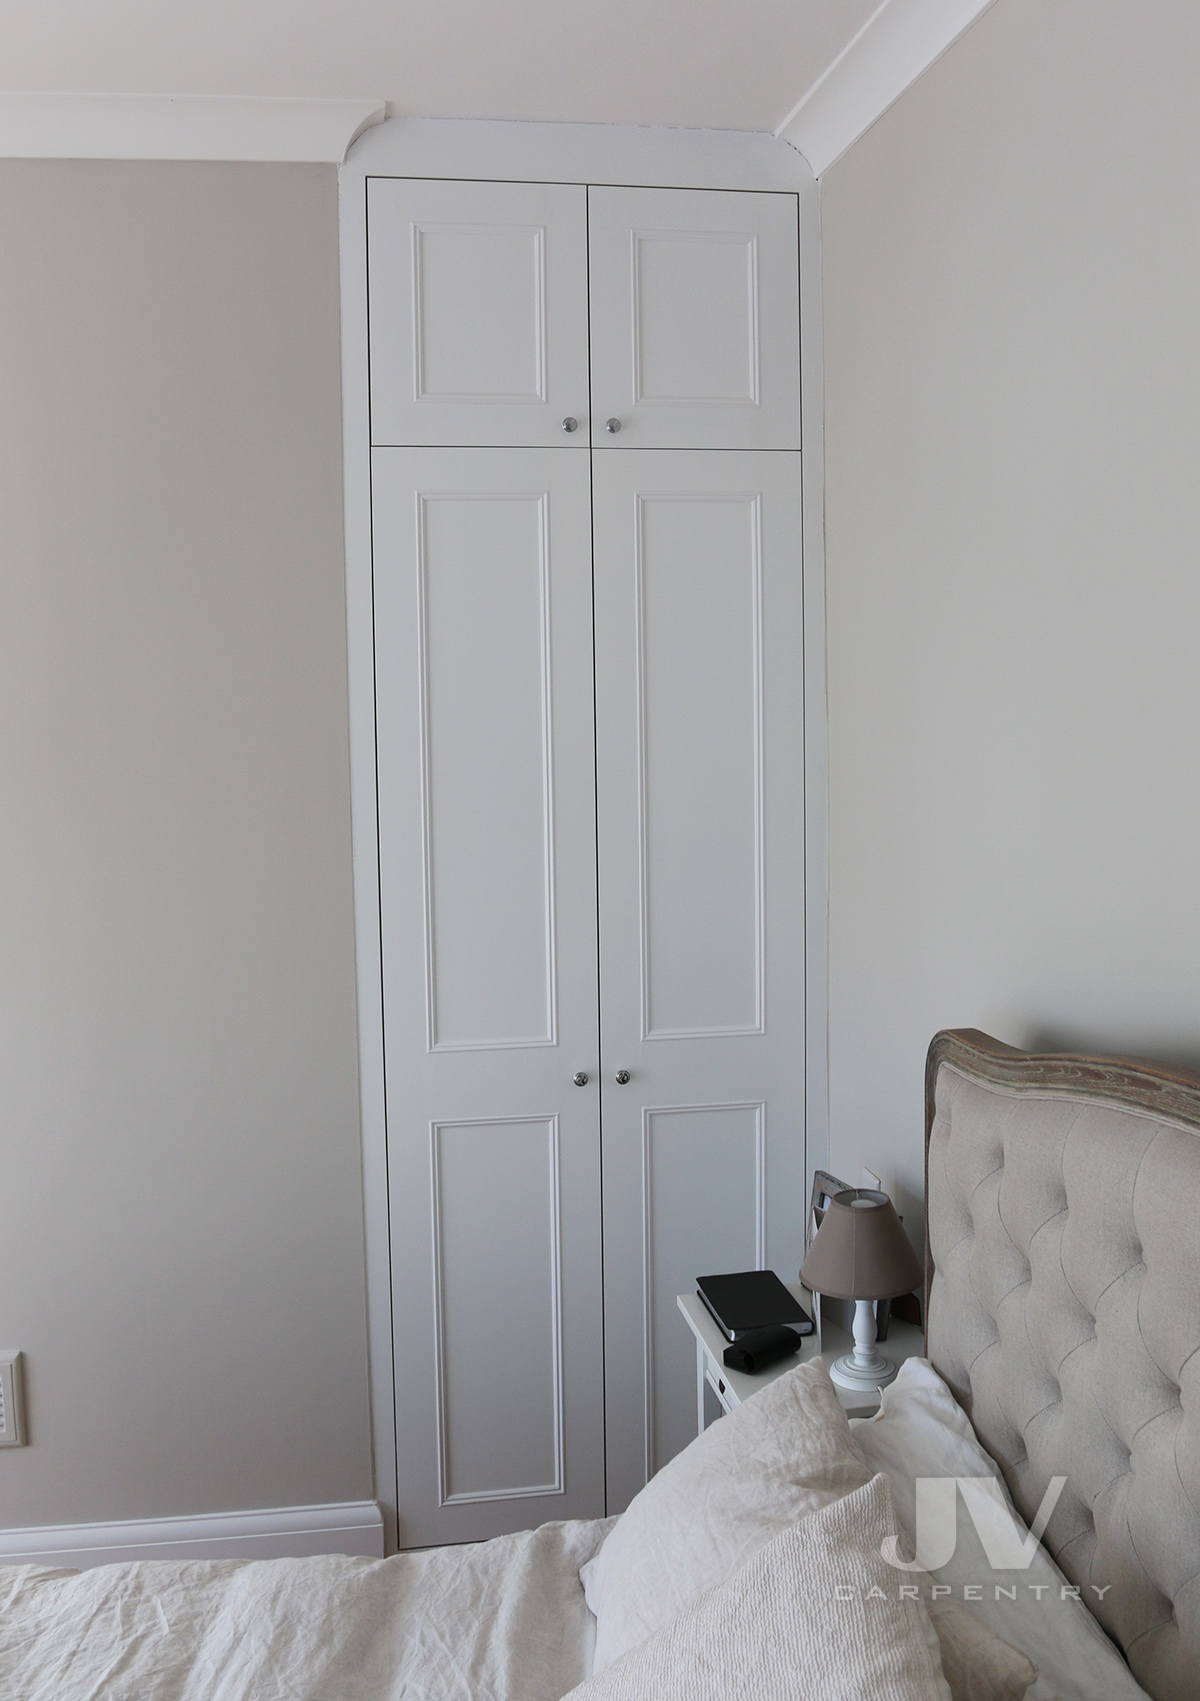 bespoke wardrobe fitted in the bedroom alcove